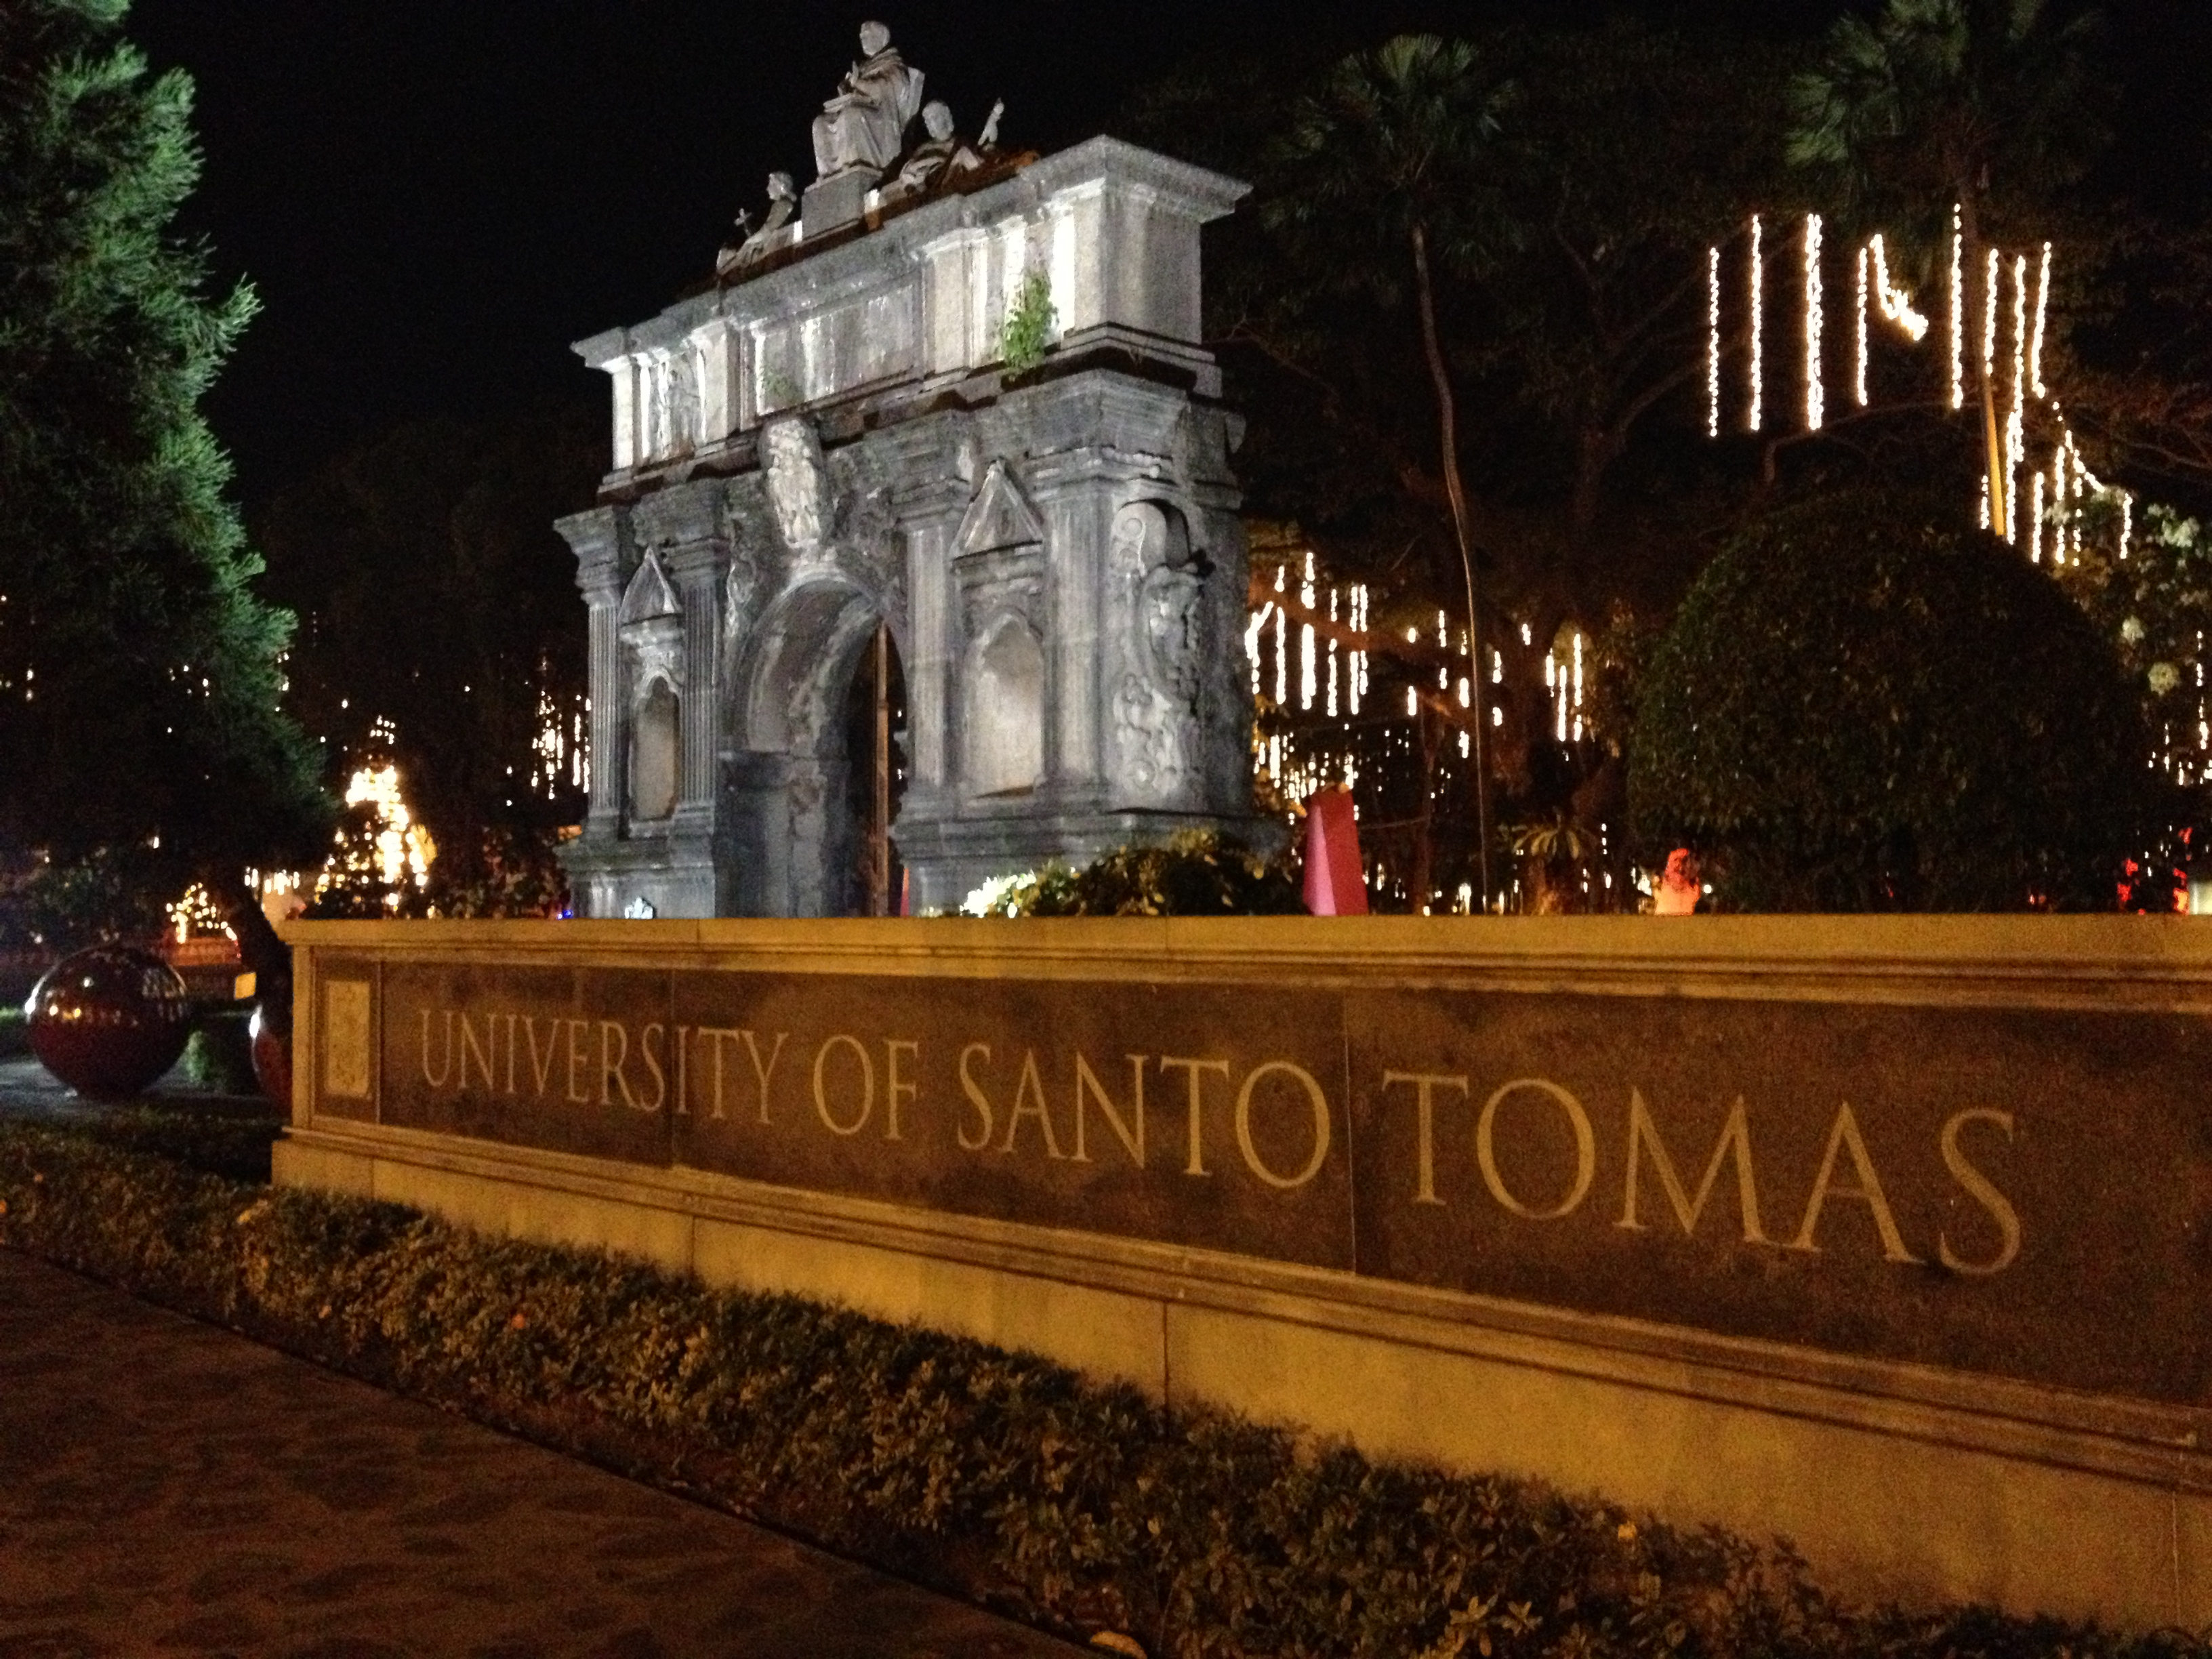 university of santo tomas high schoolmathematics University of santo tomas, manila: see 249 reviews, articles, and 111 photos of university of santo tomas, ranked no3 on tripadvisor among 144  high school  in 5 reviews  christmas season  in 4 reviews the catholic university has a number of unesco heritage.